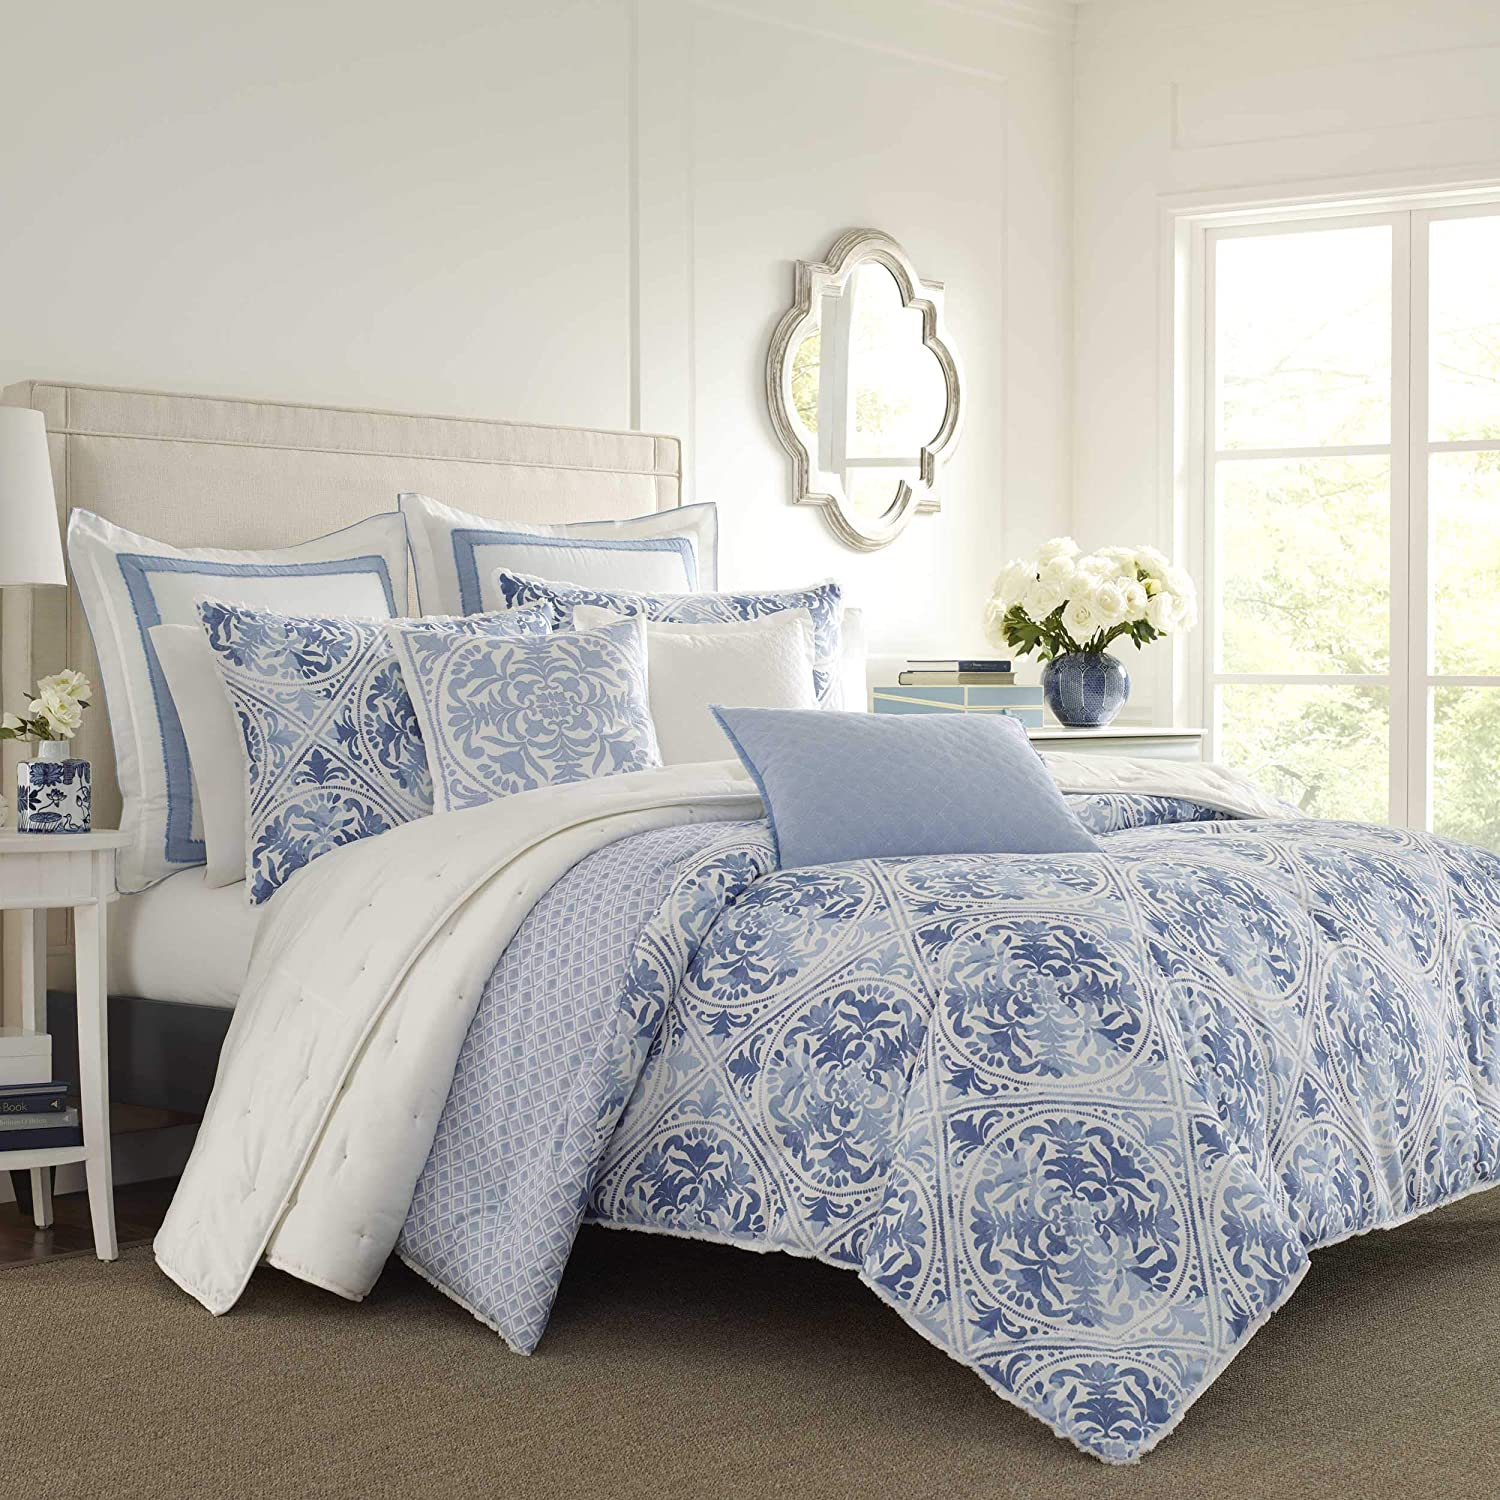 Laura Ashley Home | Mila Collection Bedding